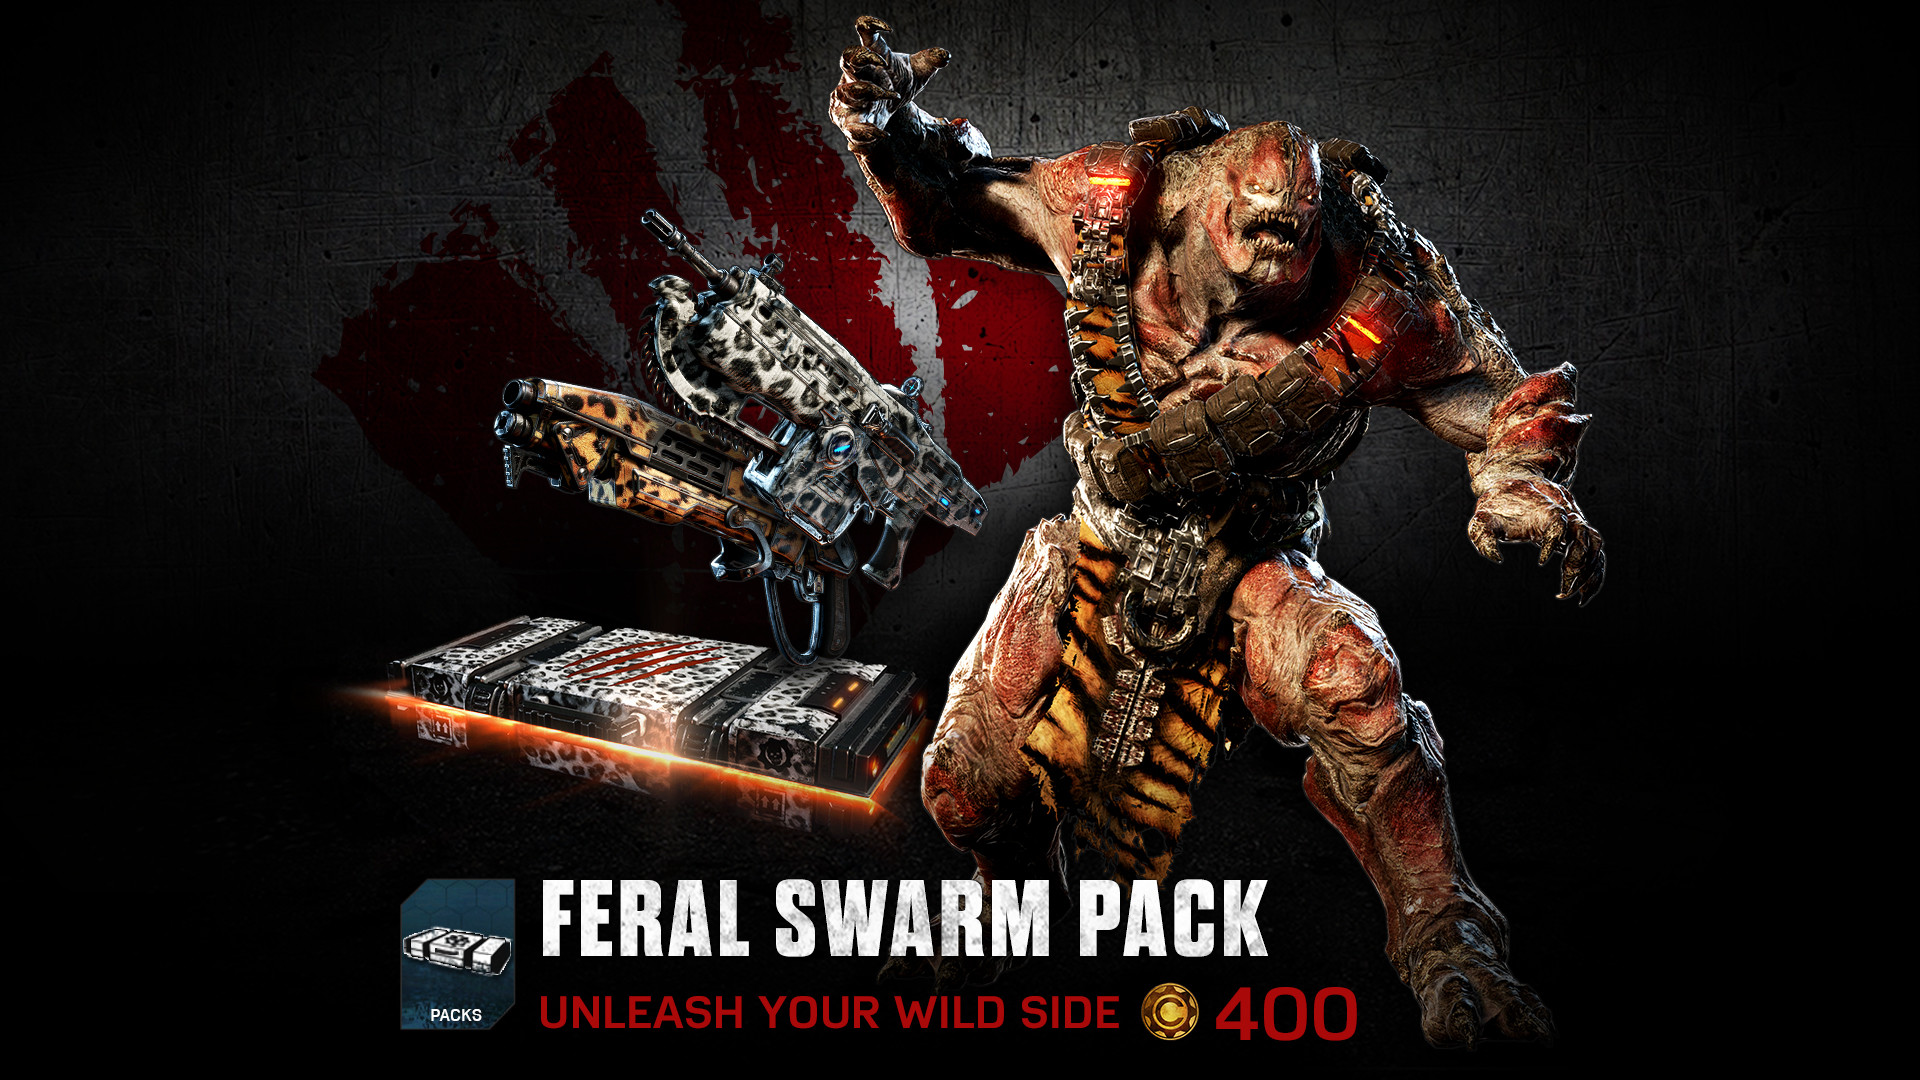 Feral Swarm Pack Promo